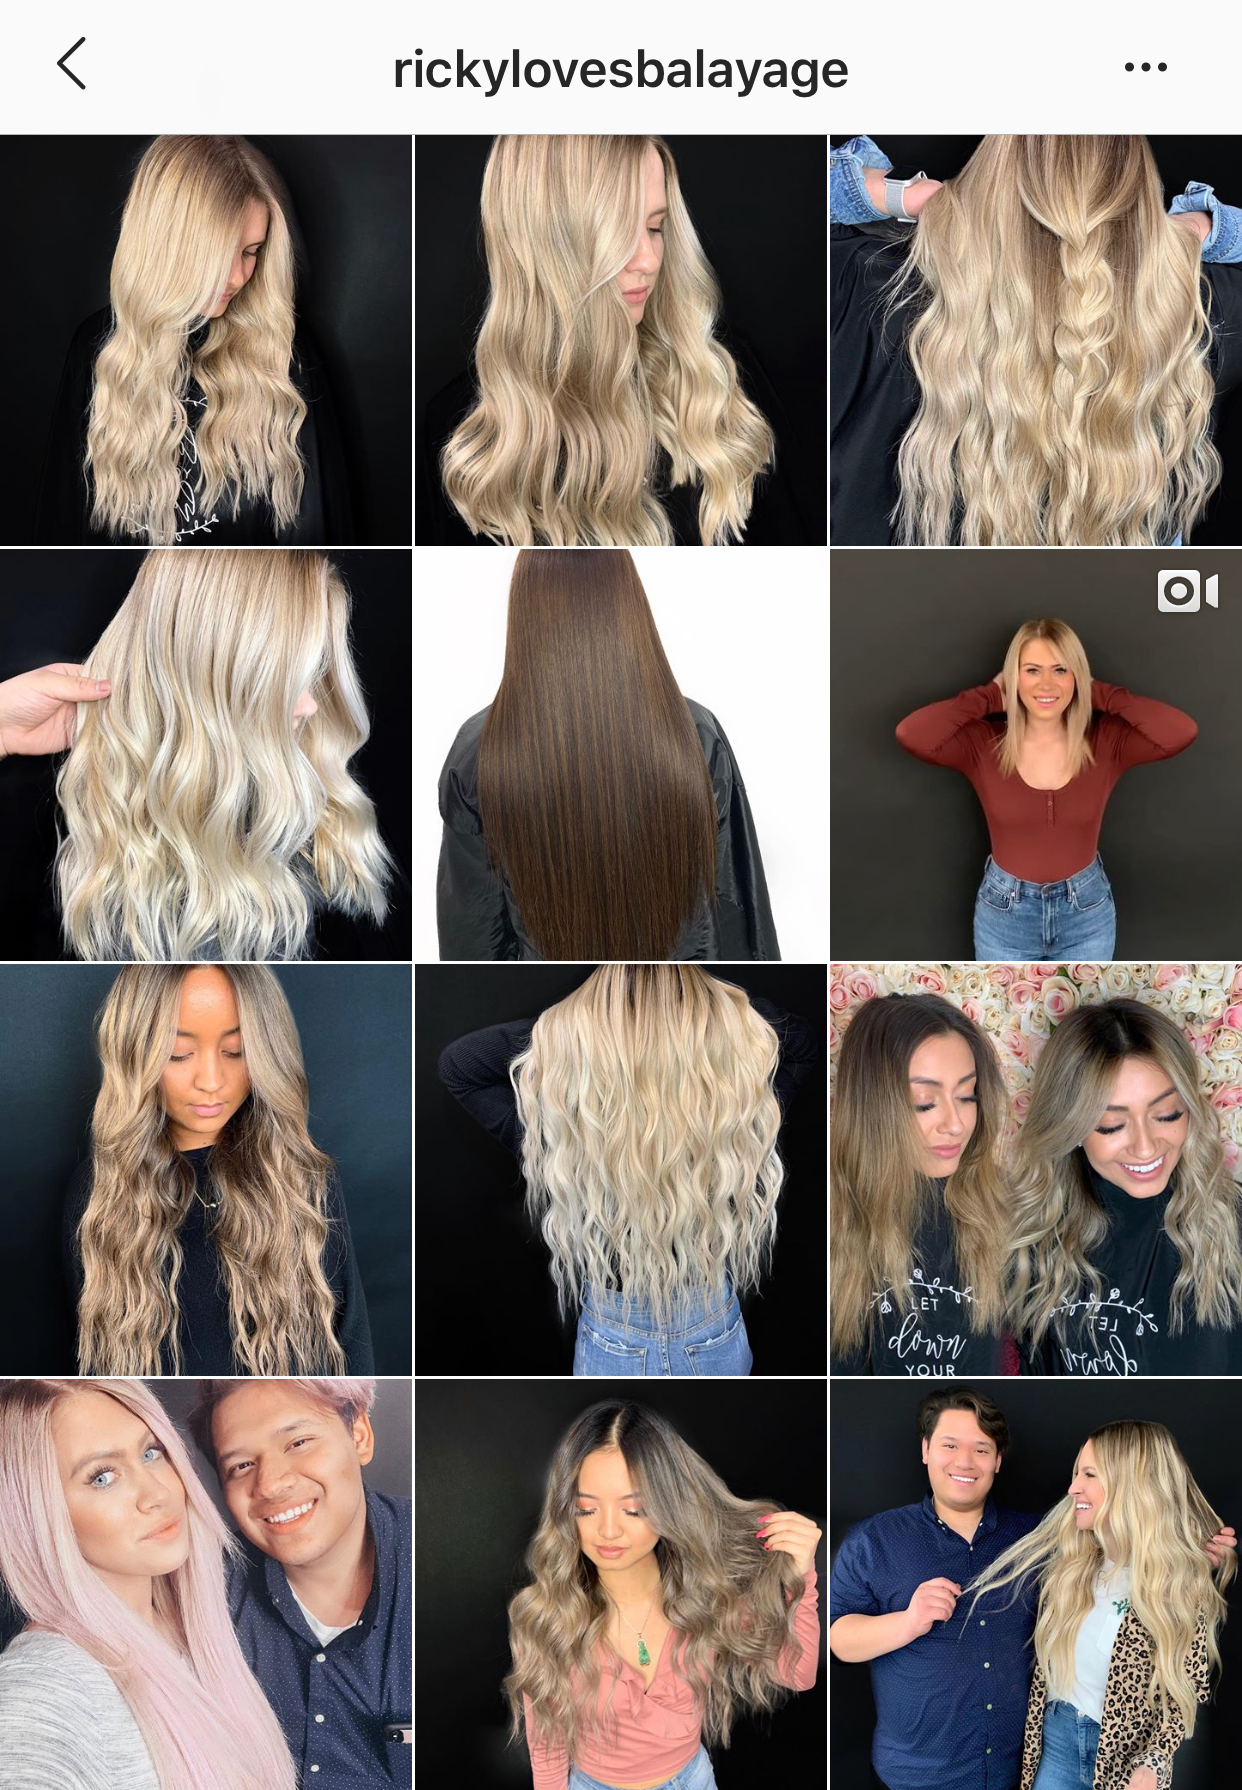 @rickylovesbalayage - Account GrowthDaily Engagement9.5K Followers